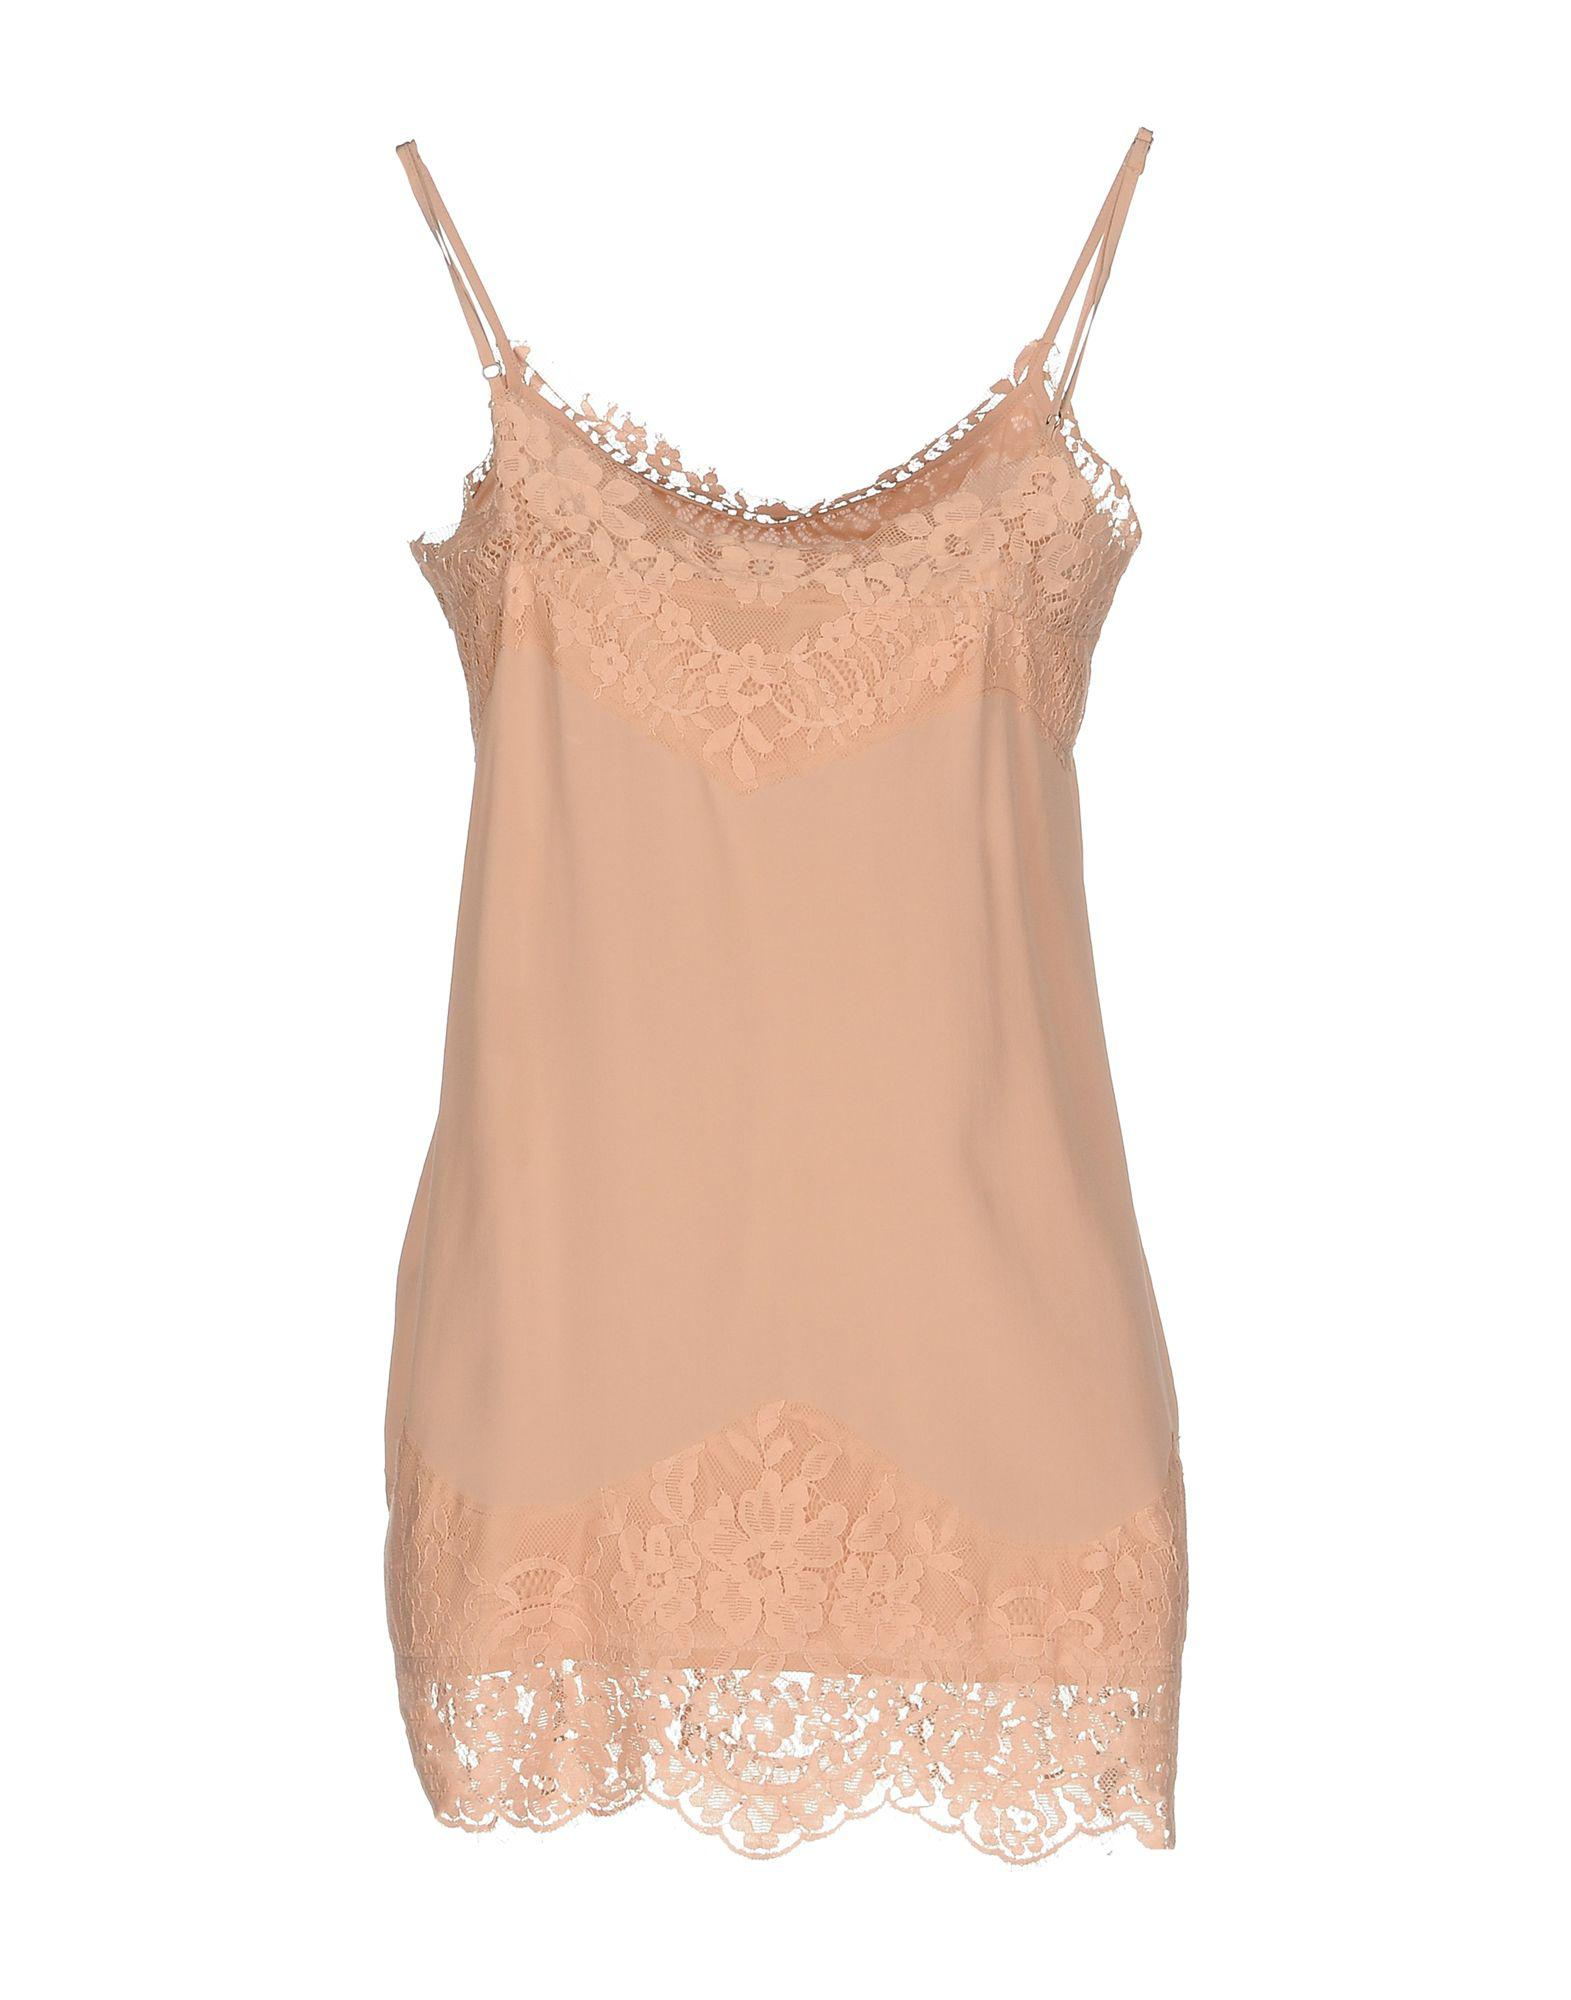 Hotel Particulier Top in Pink - Lyst 46c8aa20198